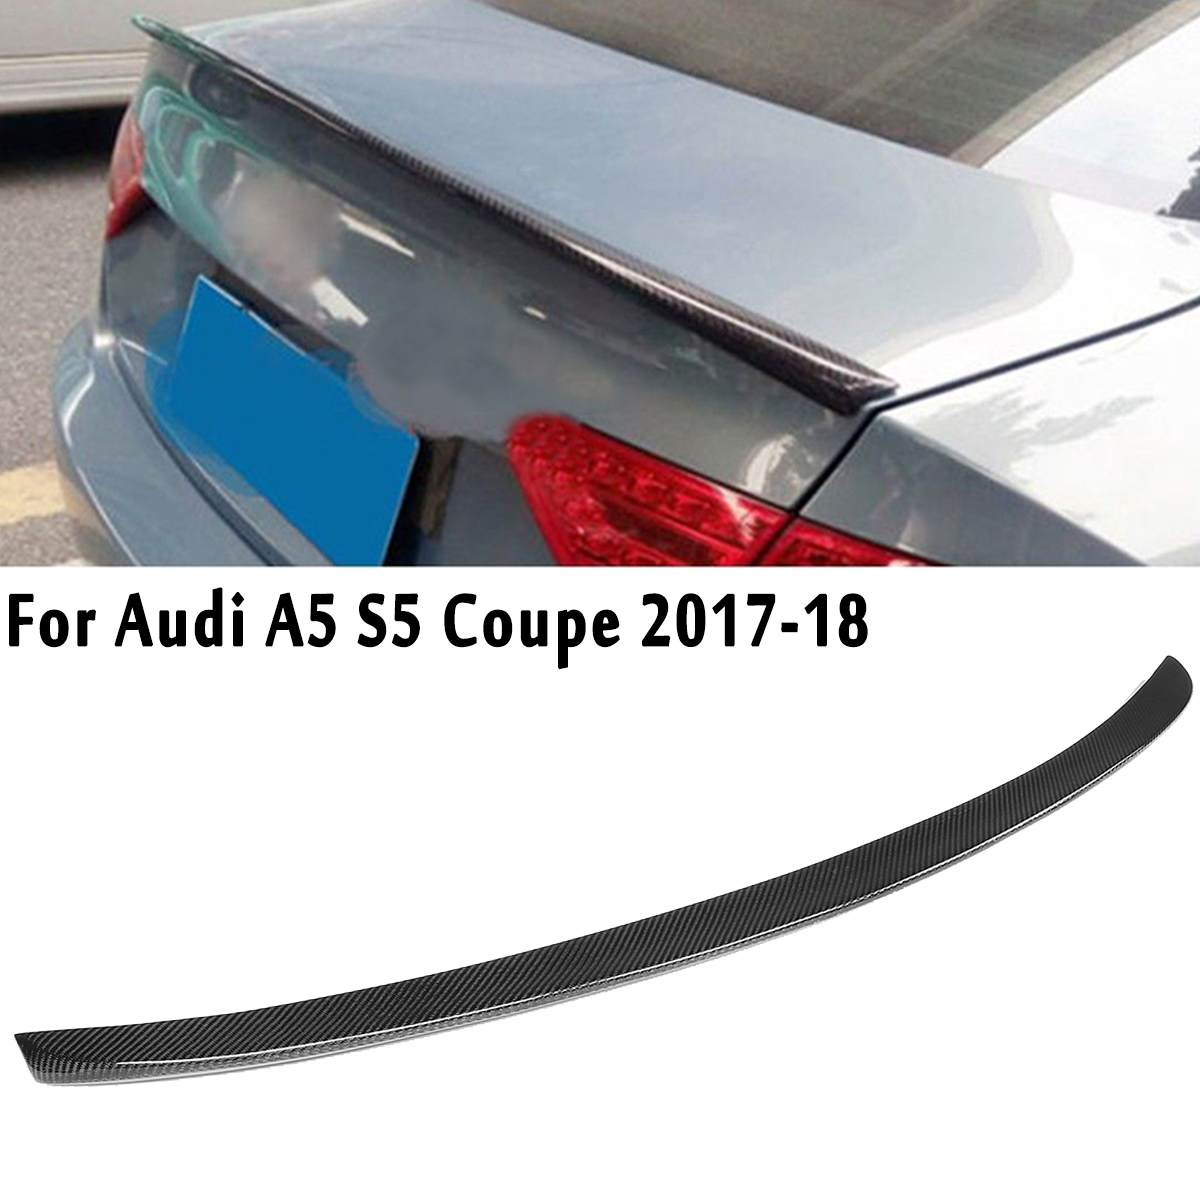 Full Real Carbon Fiber Material S Style Rear Trunk Spoiler Lip For Audi A5 S5 For Coupe 2 Door 2017-2018Full Real Carbon Fiber Material S Style Rear Trunk Spoiler Lip For Audi A5 S5 For Coupe 2 Door 2017-2018